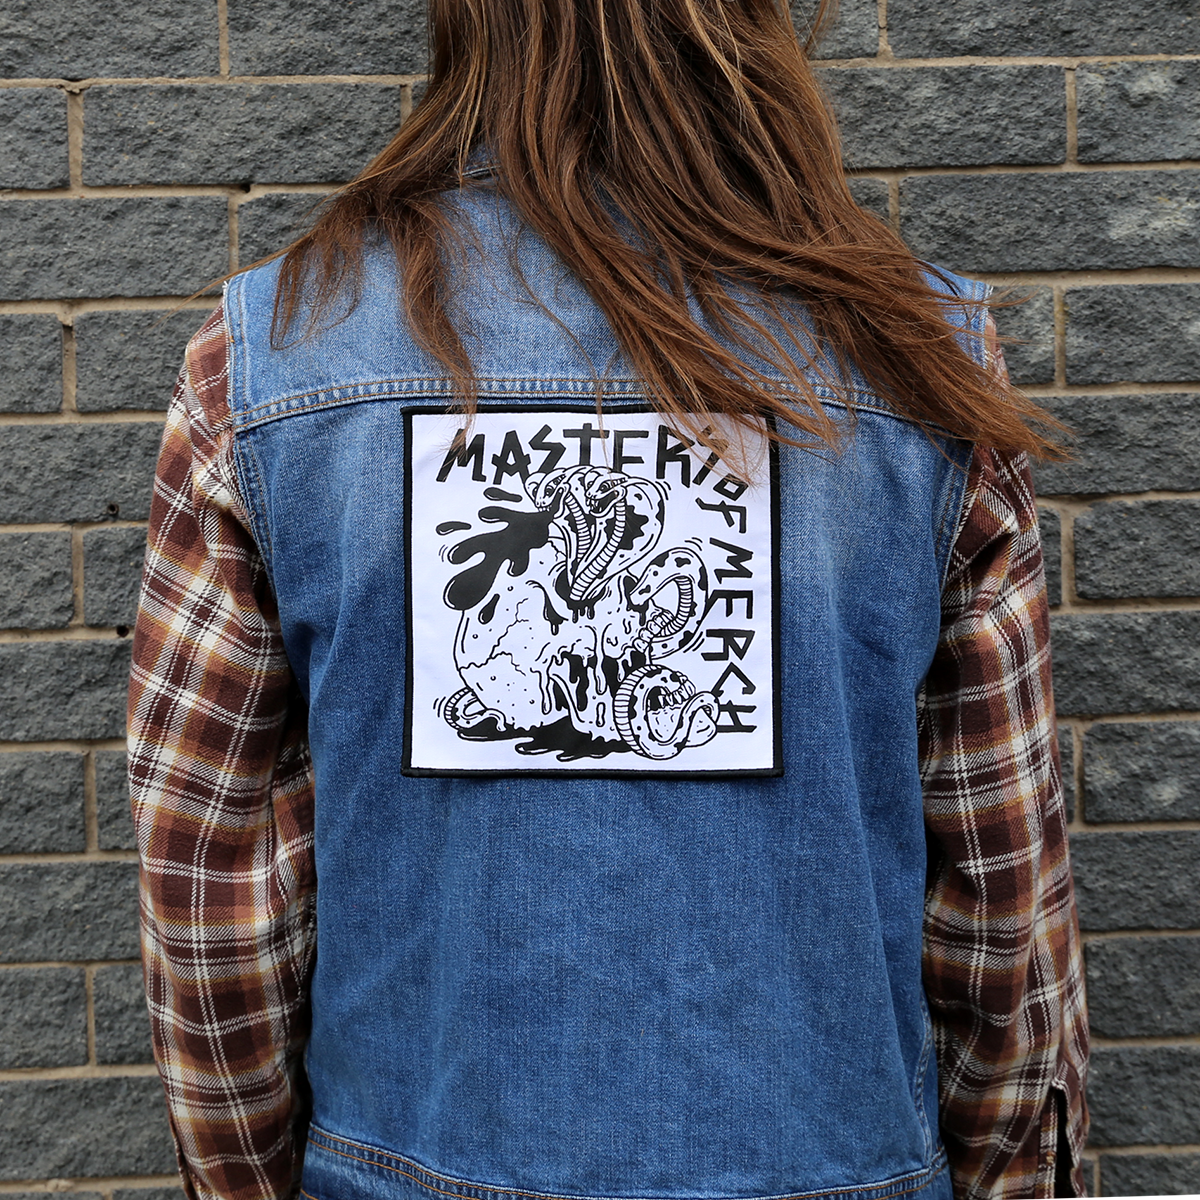 Patch, patches, back patch, awesome merchandise,